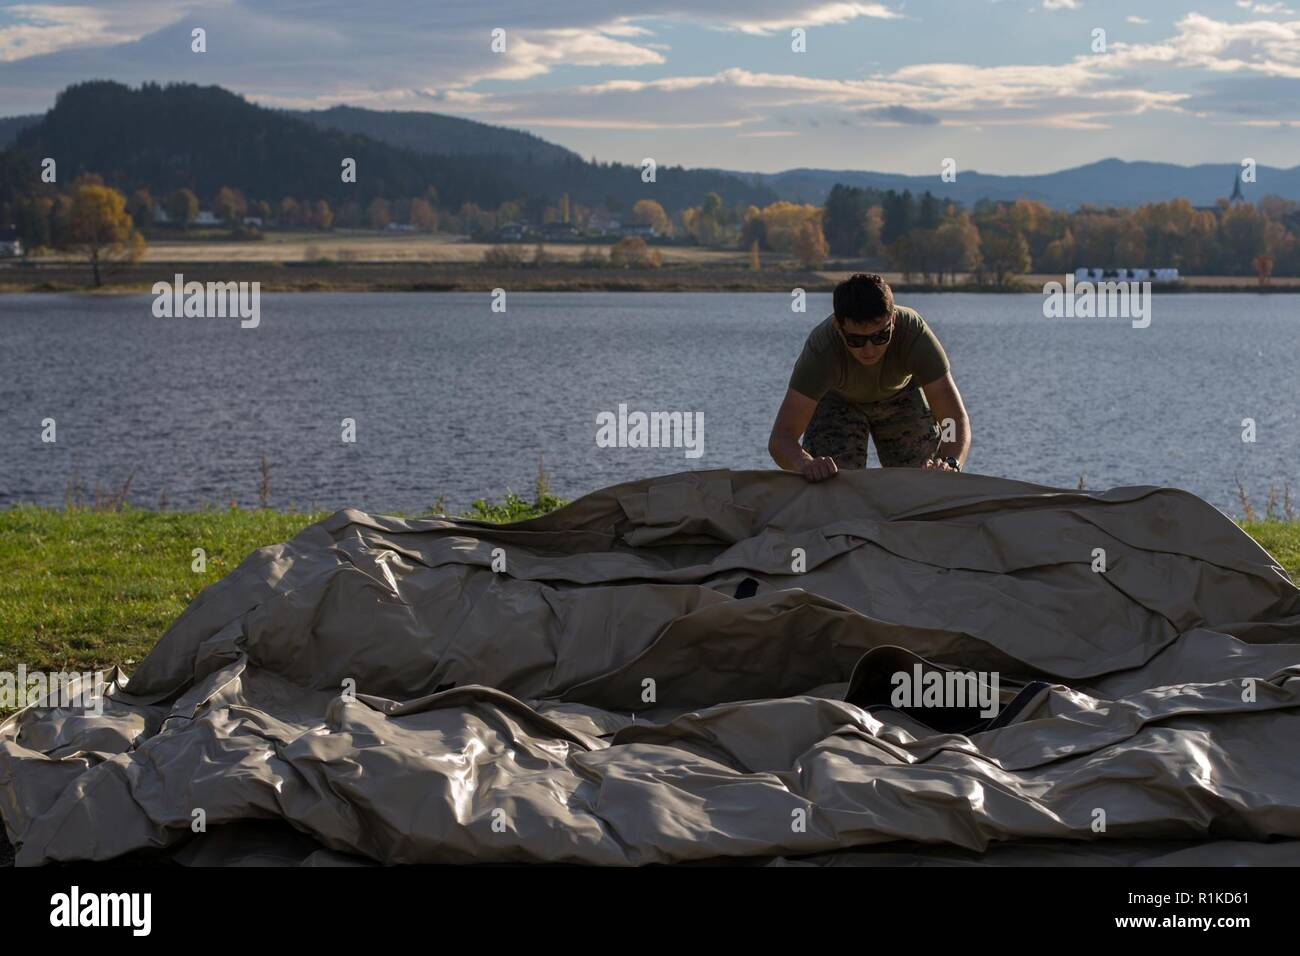 U.S. Marine Corps Lance Cpl. Israel Santibanez with 8th Engineer Battalion, 2nd Marine Logistics Group-Forward, unfolds a water storage bladder in Værnes, Norway, Oct. 12, 2018. Marines purified water and made potable for use in camp support and operations during Exercise Trident Juncture 18. Trident Juncture enhances the U.S. and NATO Allies' and partners' abilities to work together collectively to conduct military operations under challenging conditions. - Stock Image